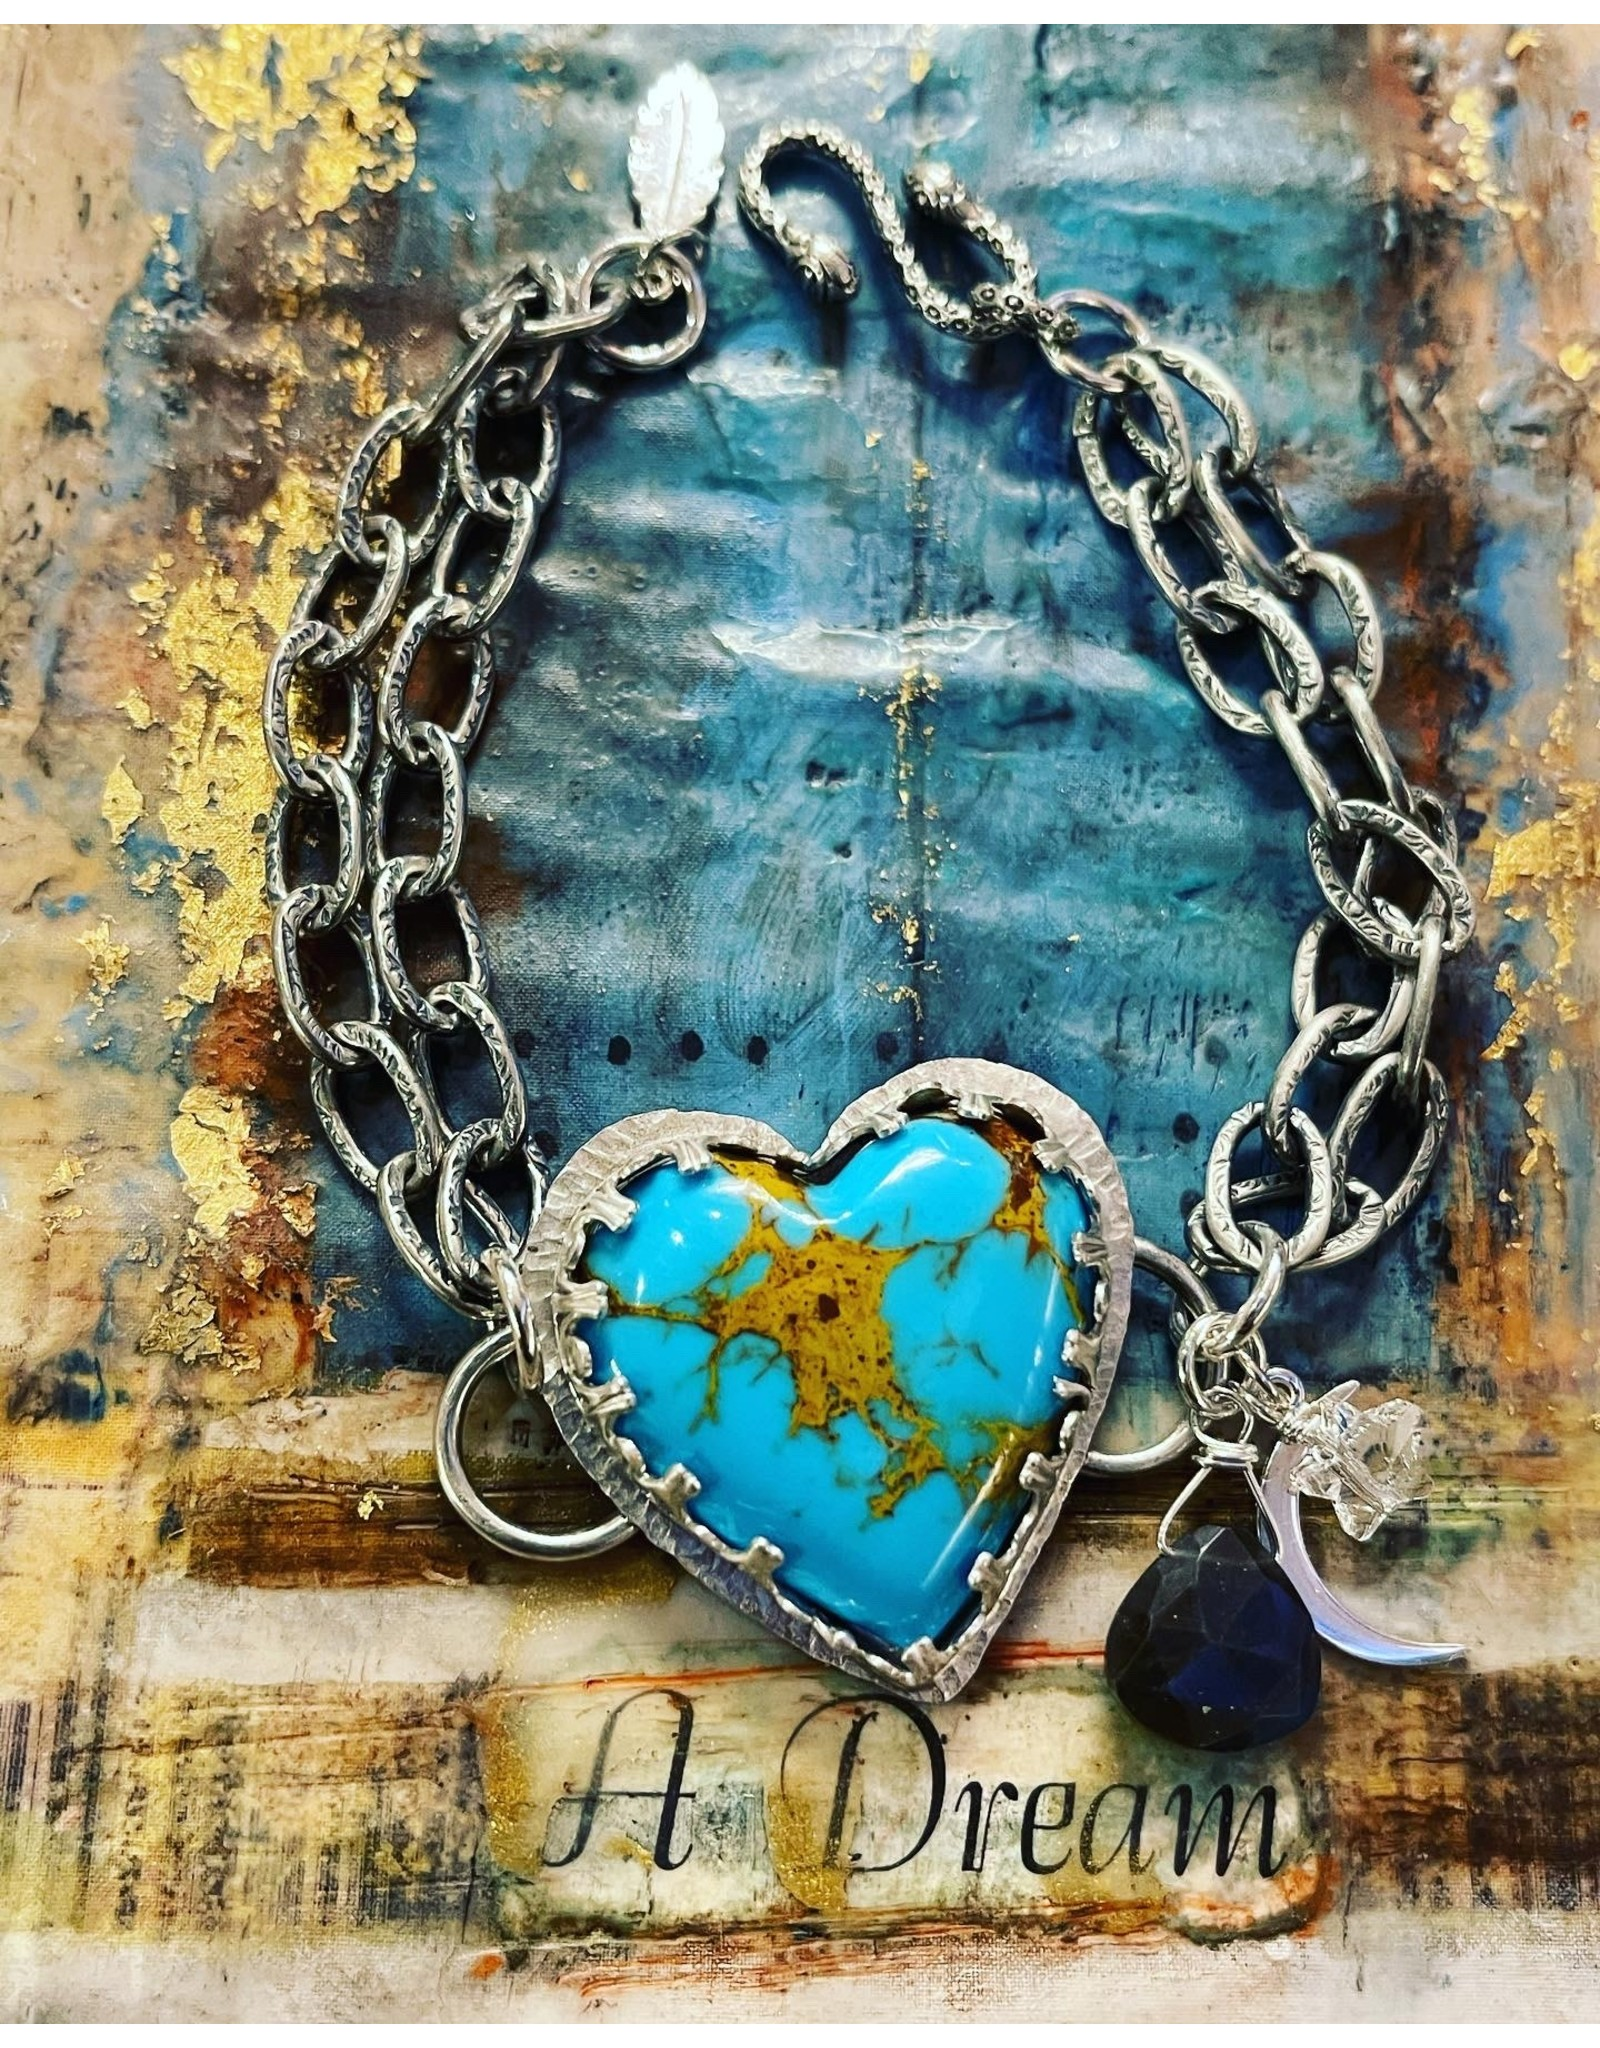 Annette Colby - Jeweler Kingman Turquoise Heart Double Chain Bracelet - Annette Colby